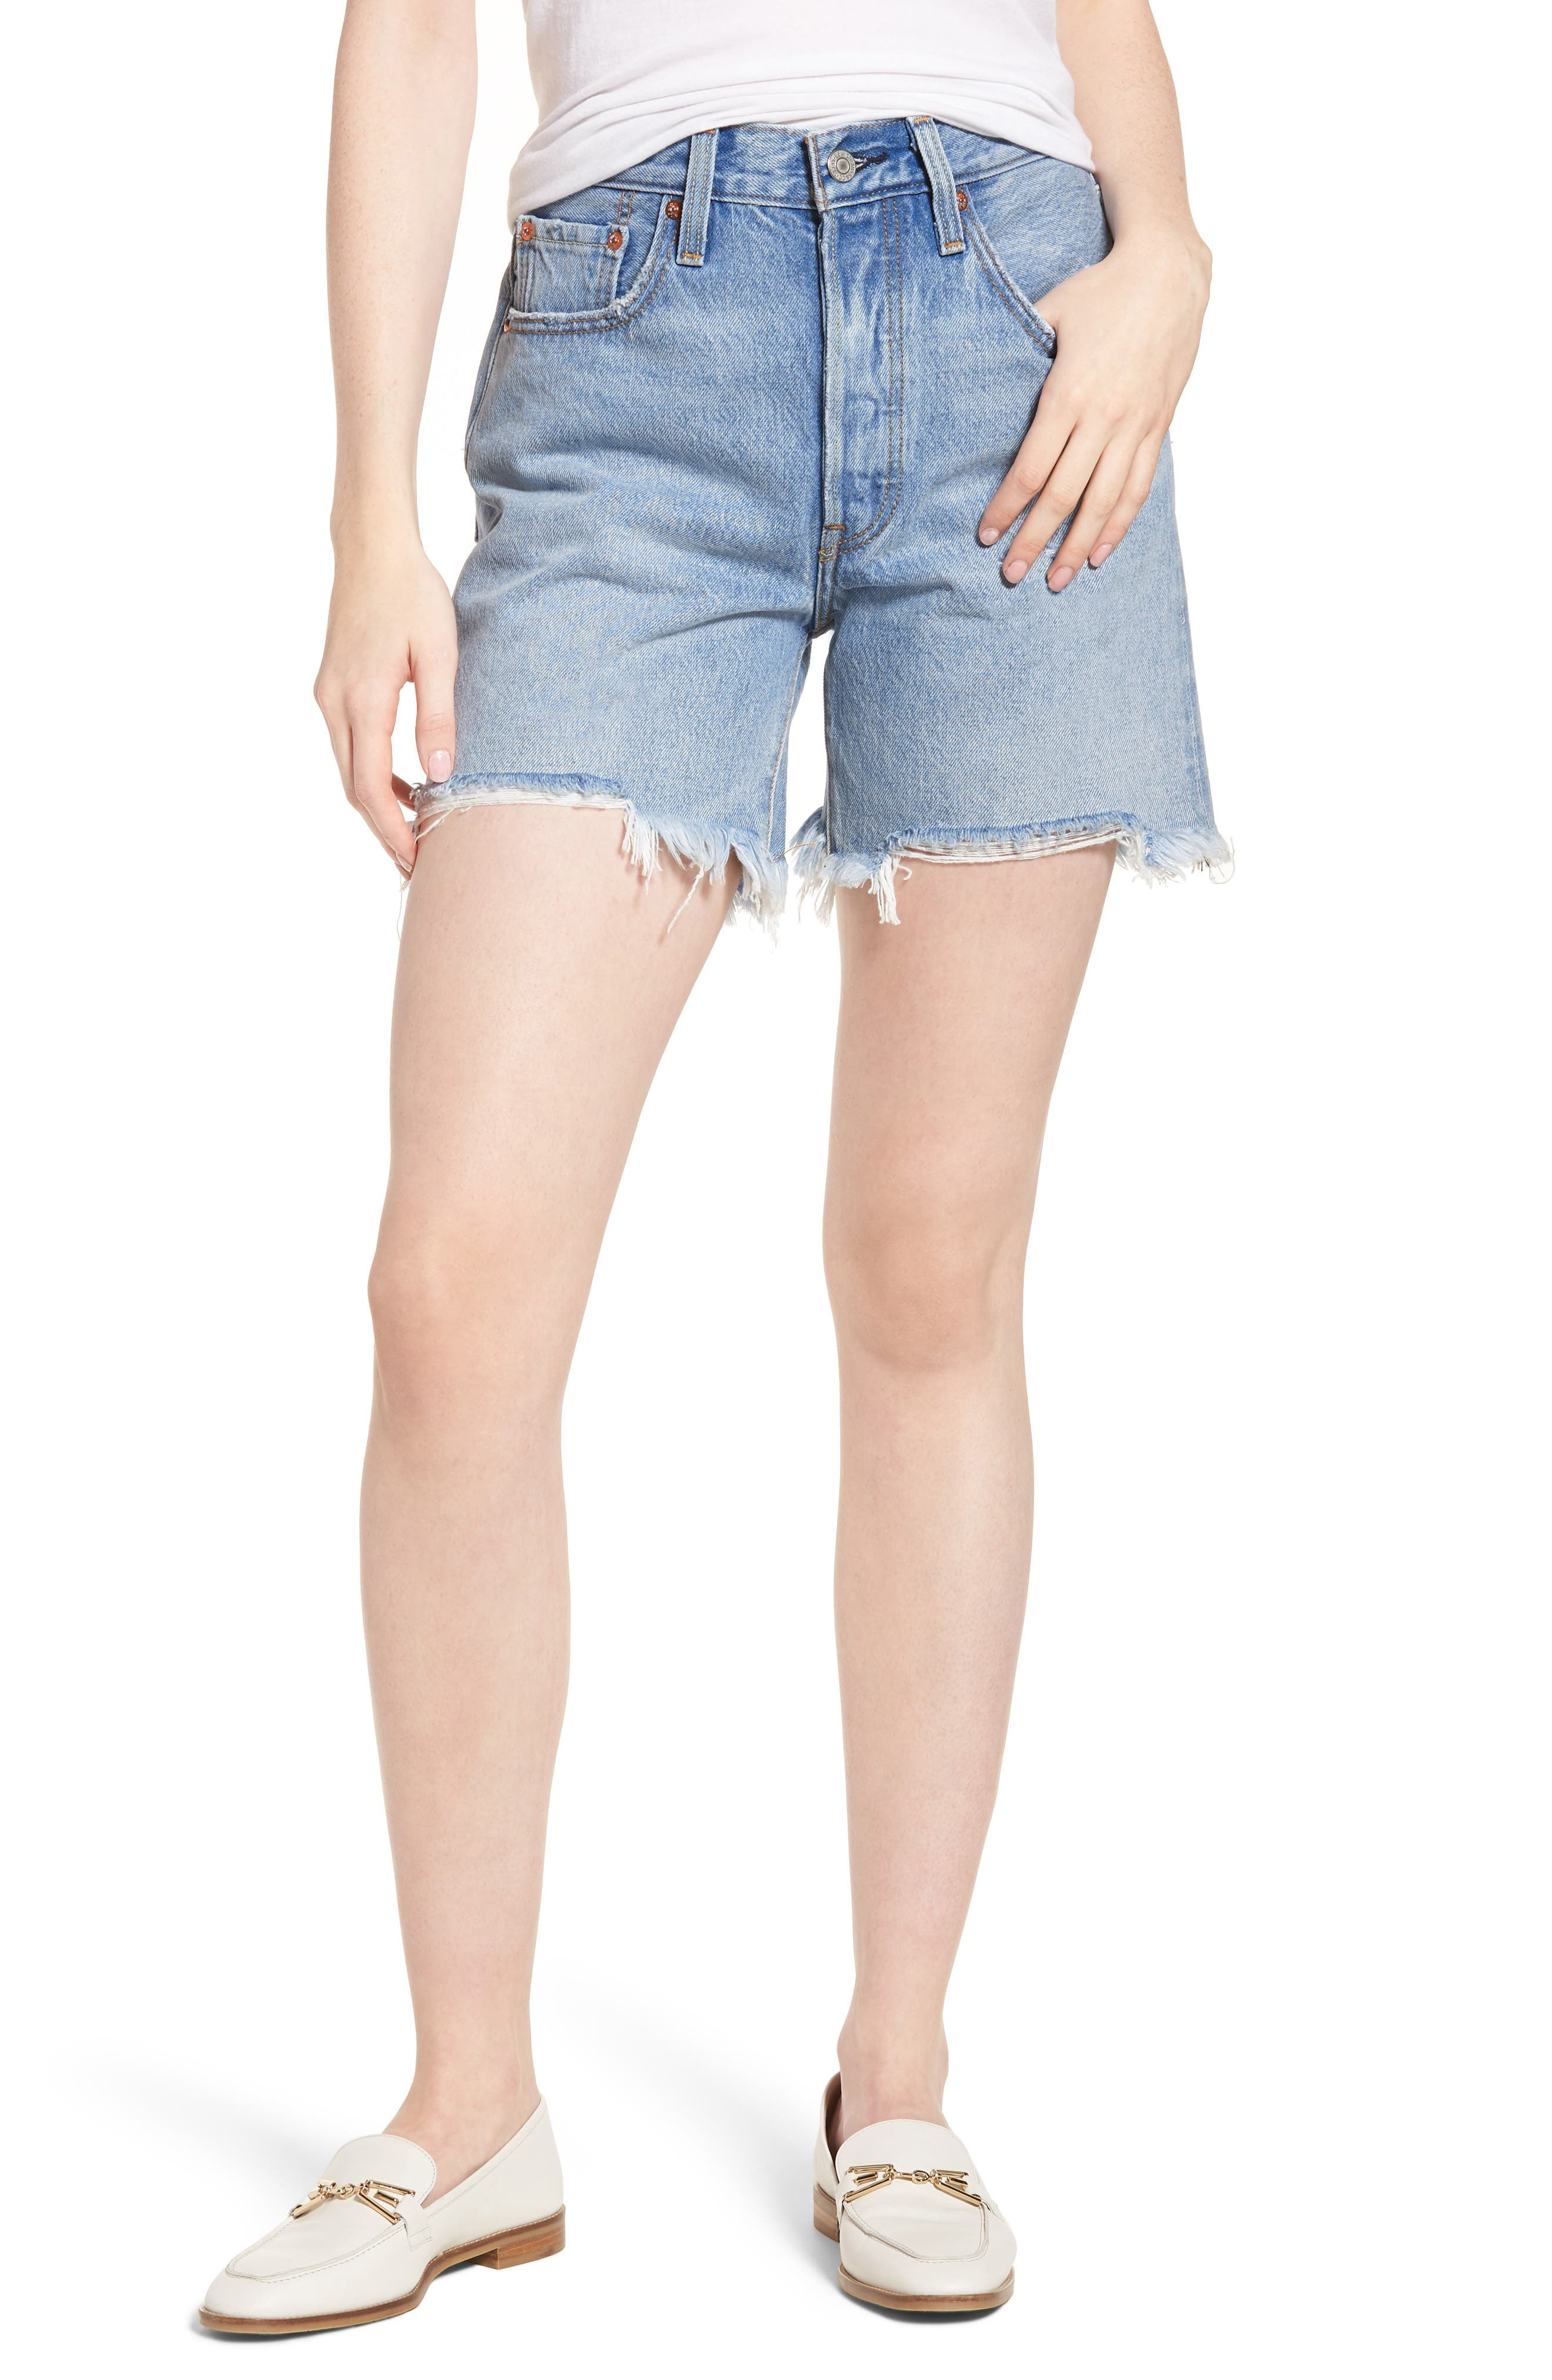 Indie Shredded Shorts,                         Main,                         color, 420